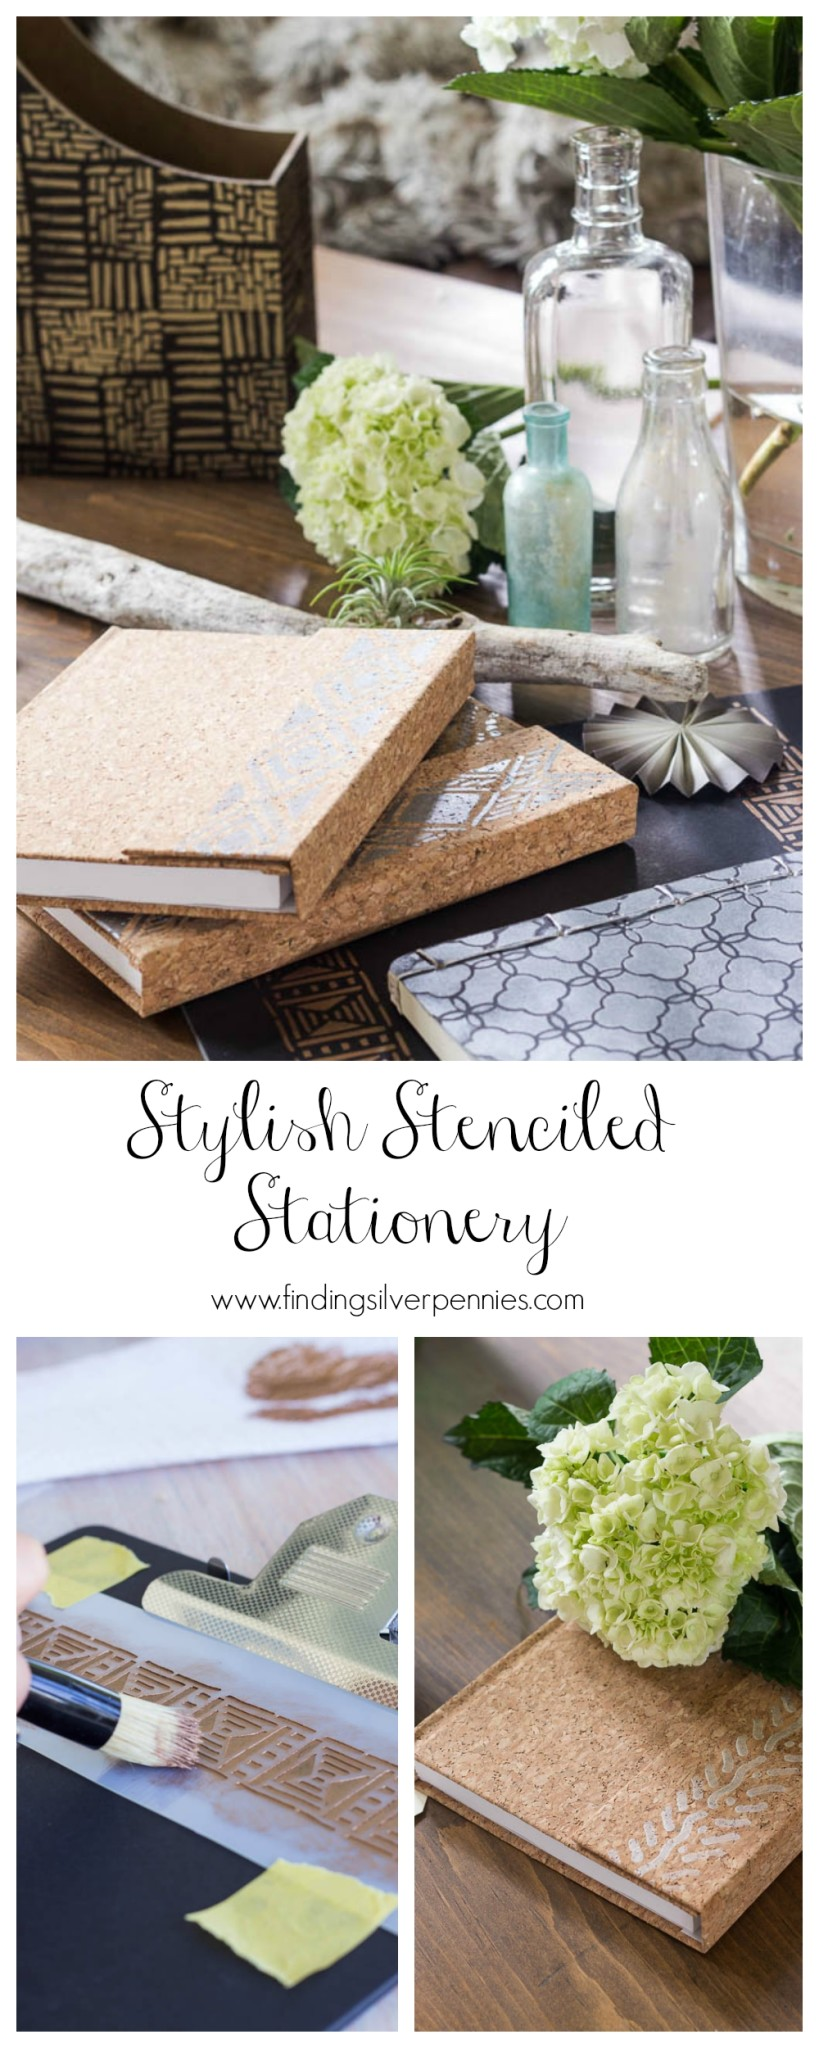 Stylish Stenciled Stationery Finding Silver Pennies